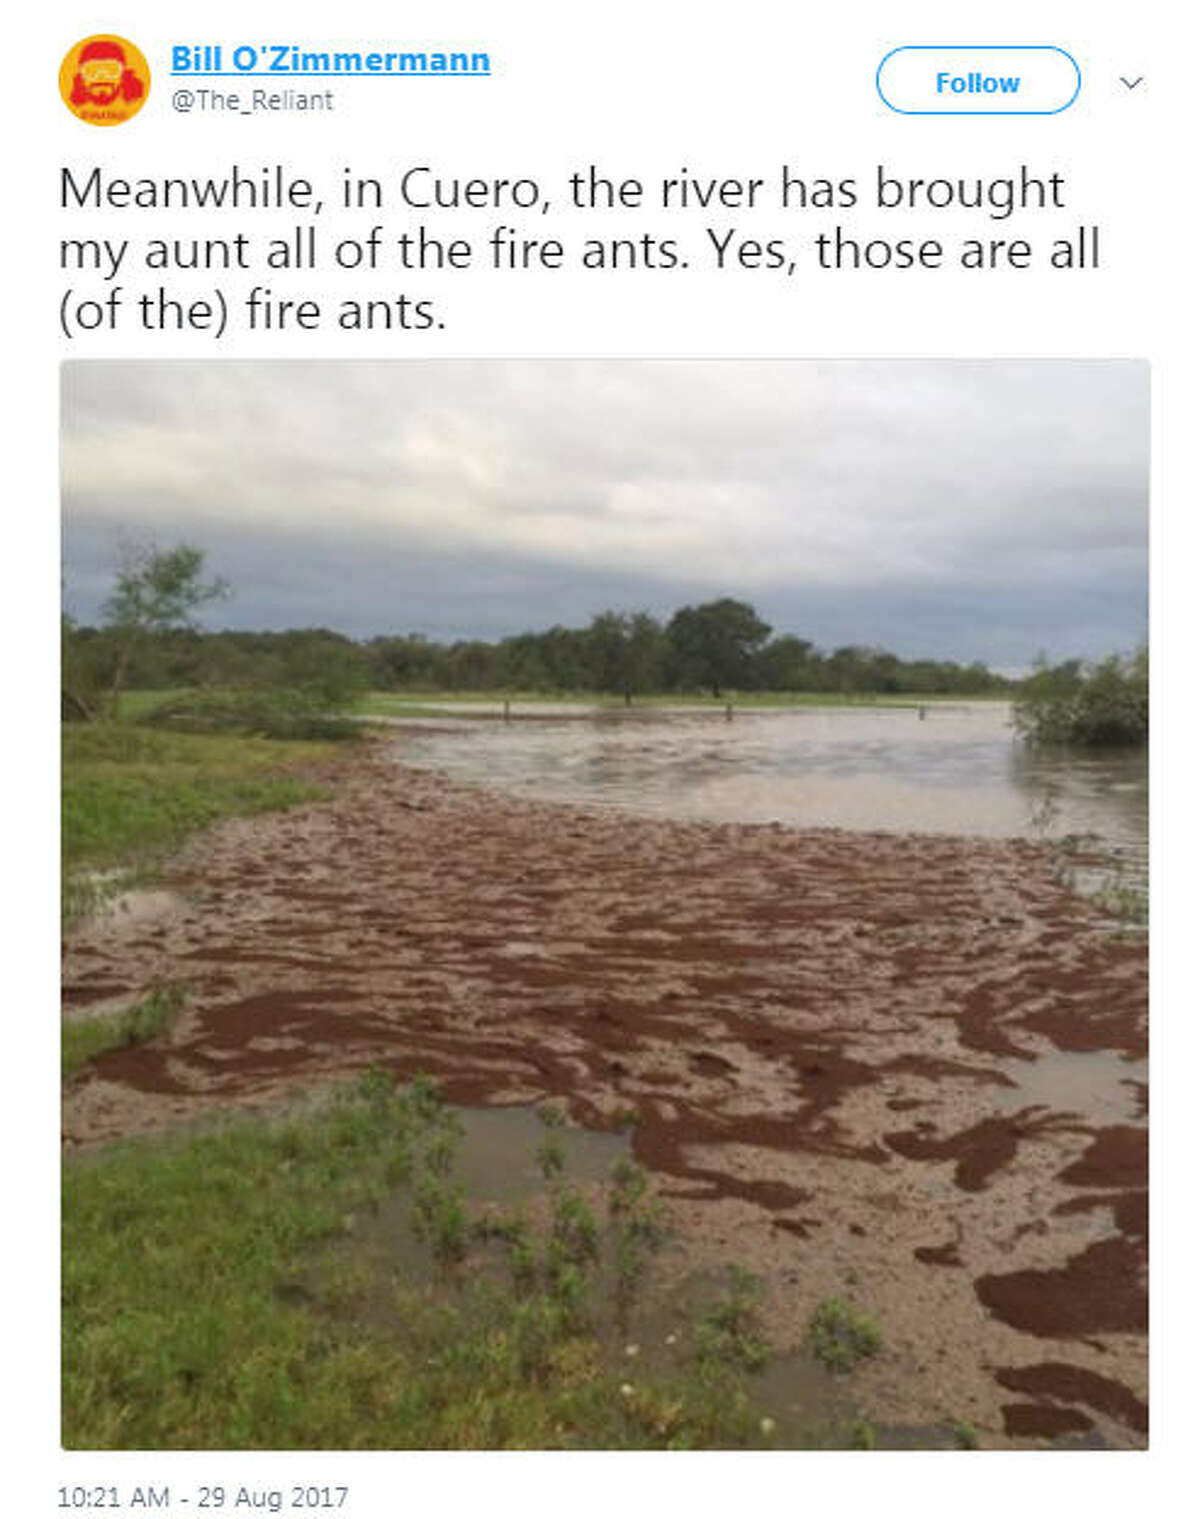 A photo of fire ants filling a Texas river thanks to Harvey floodinga is what nightmares are made of.